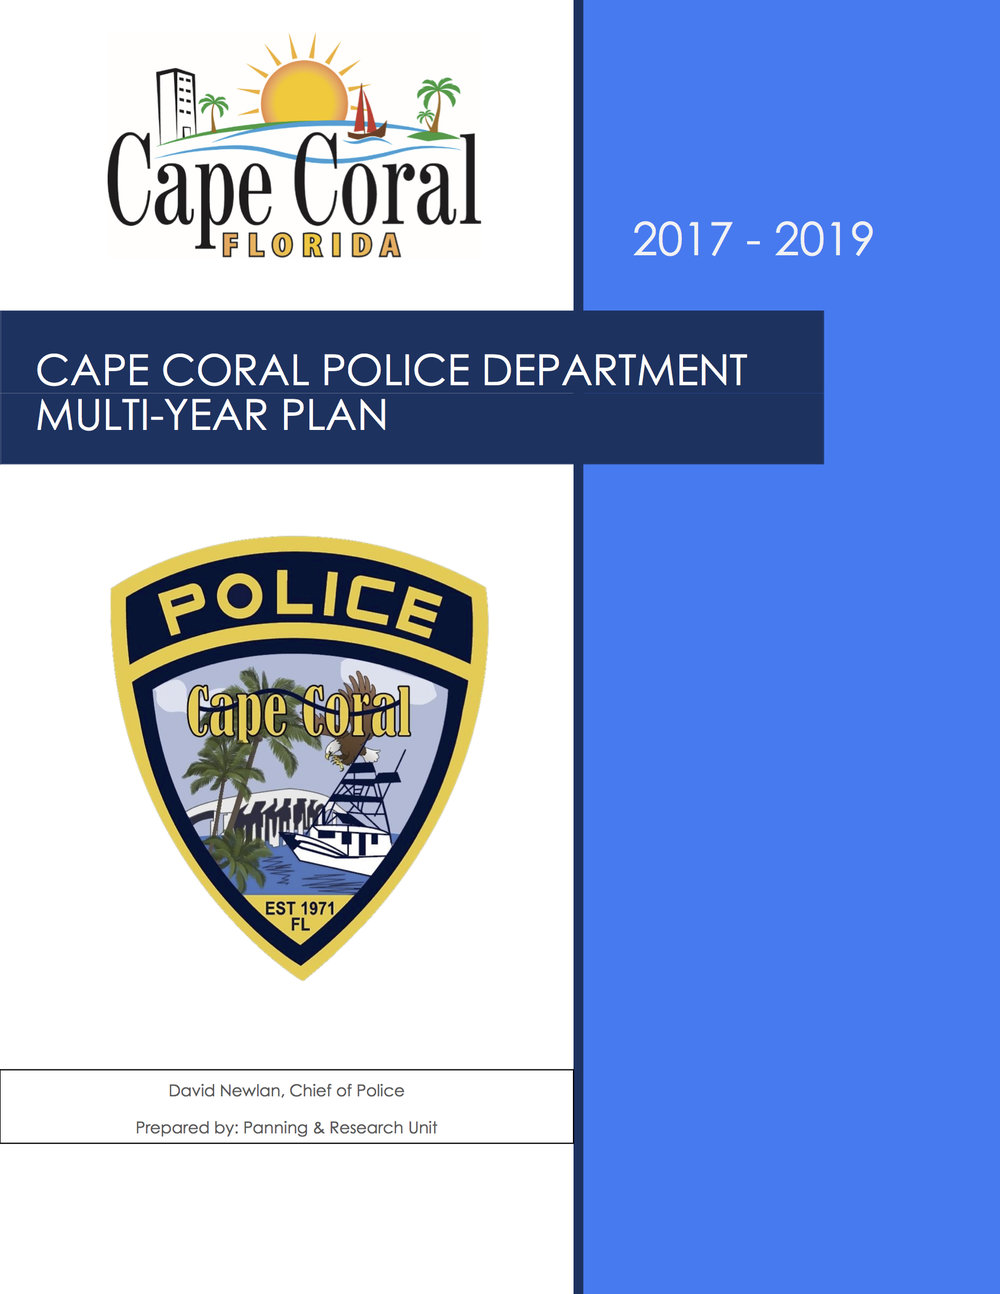 Cape Coral Police Department Multi-Year Plan 2017-2019 - The Multi-Year Plan provides a strategic look at the goals and objectives of the department over a 3 year period.